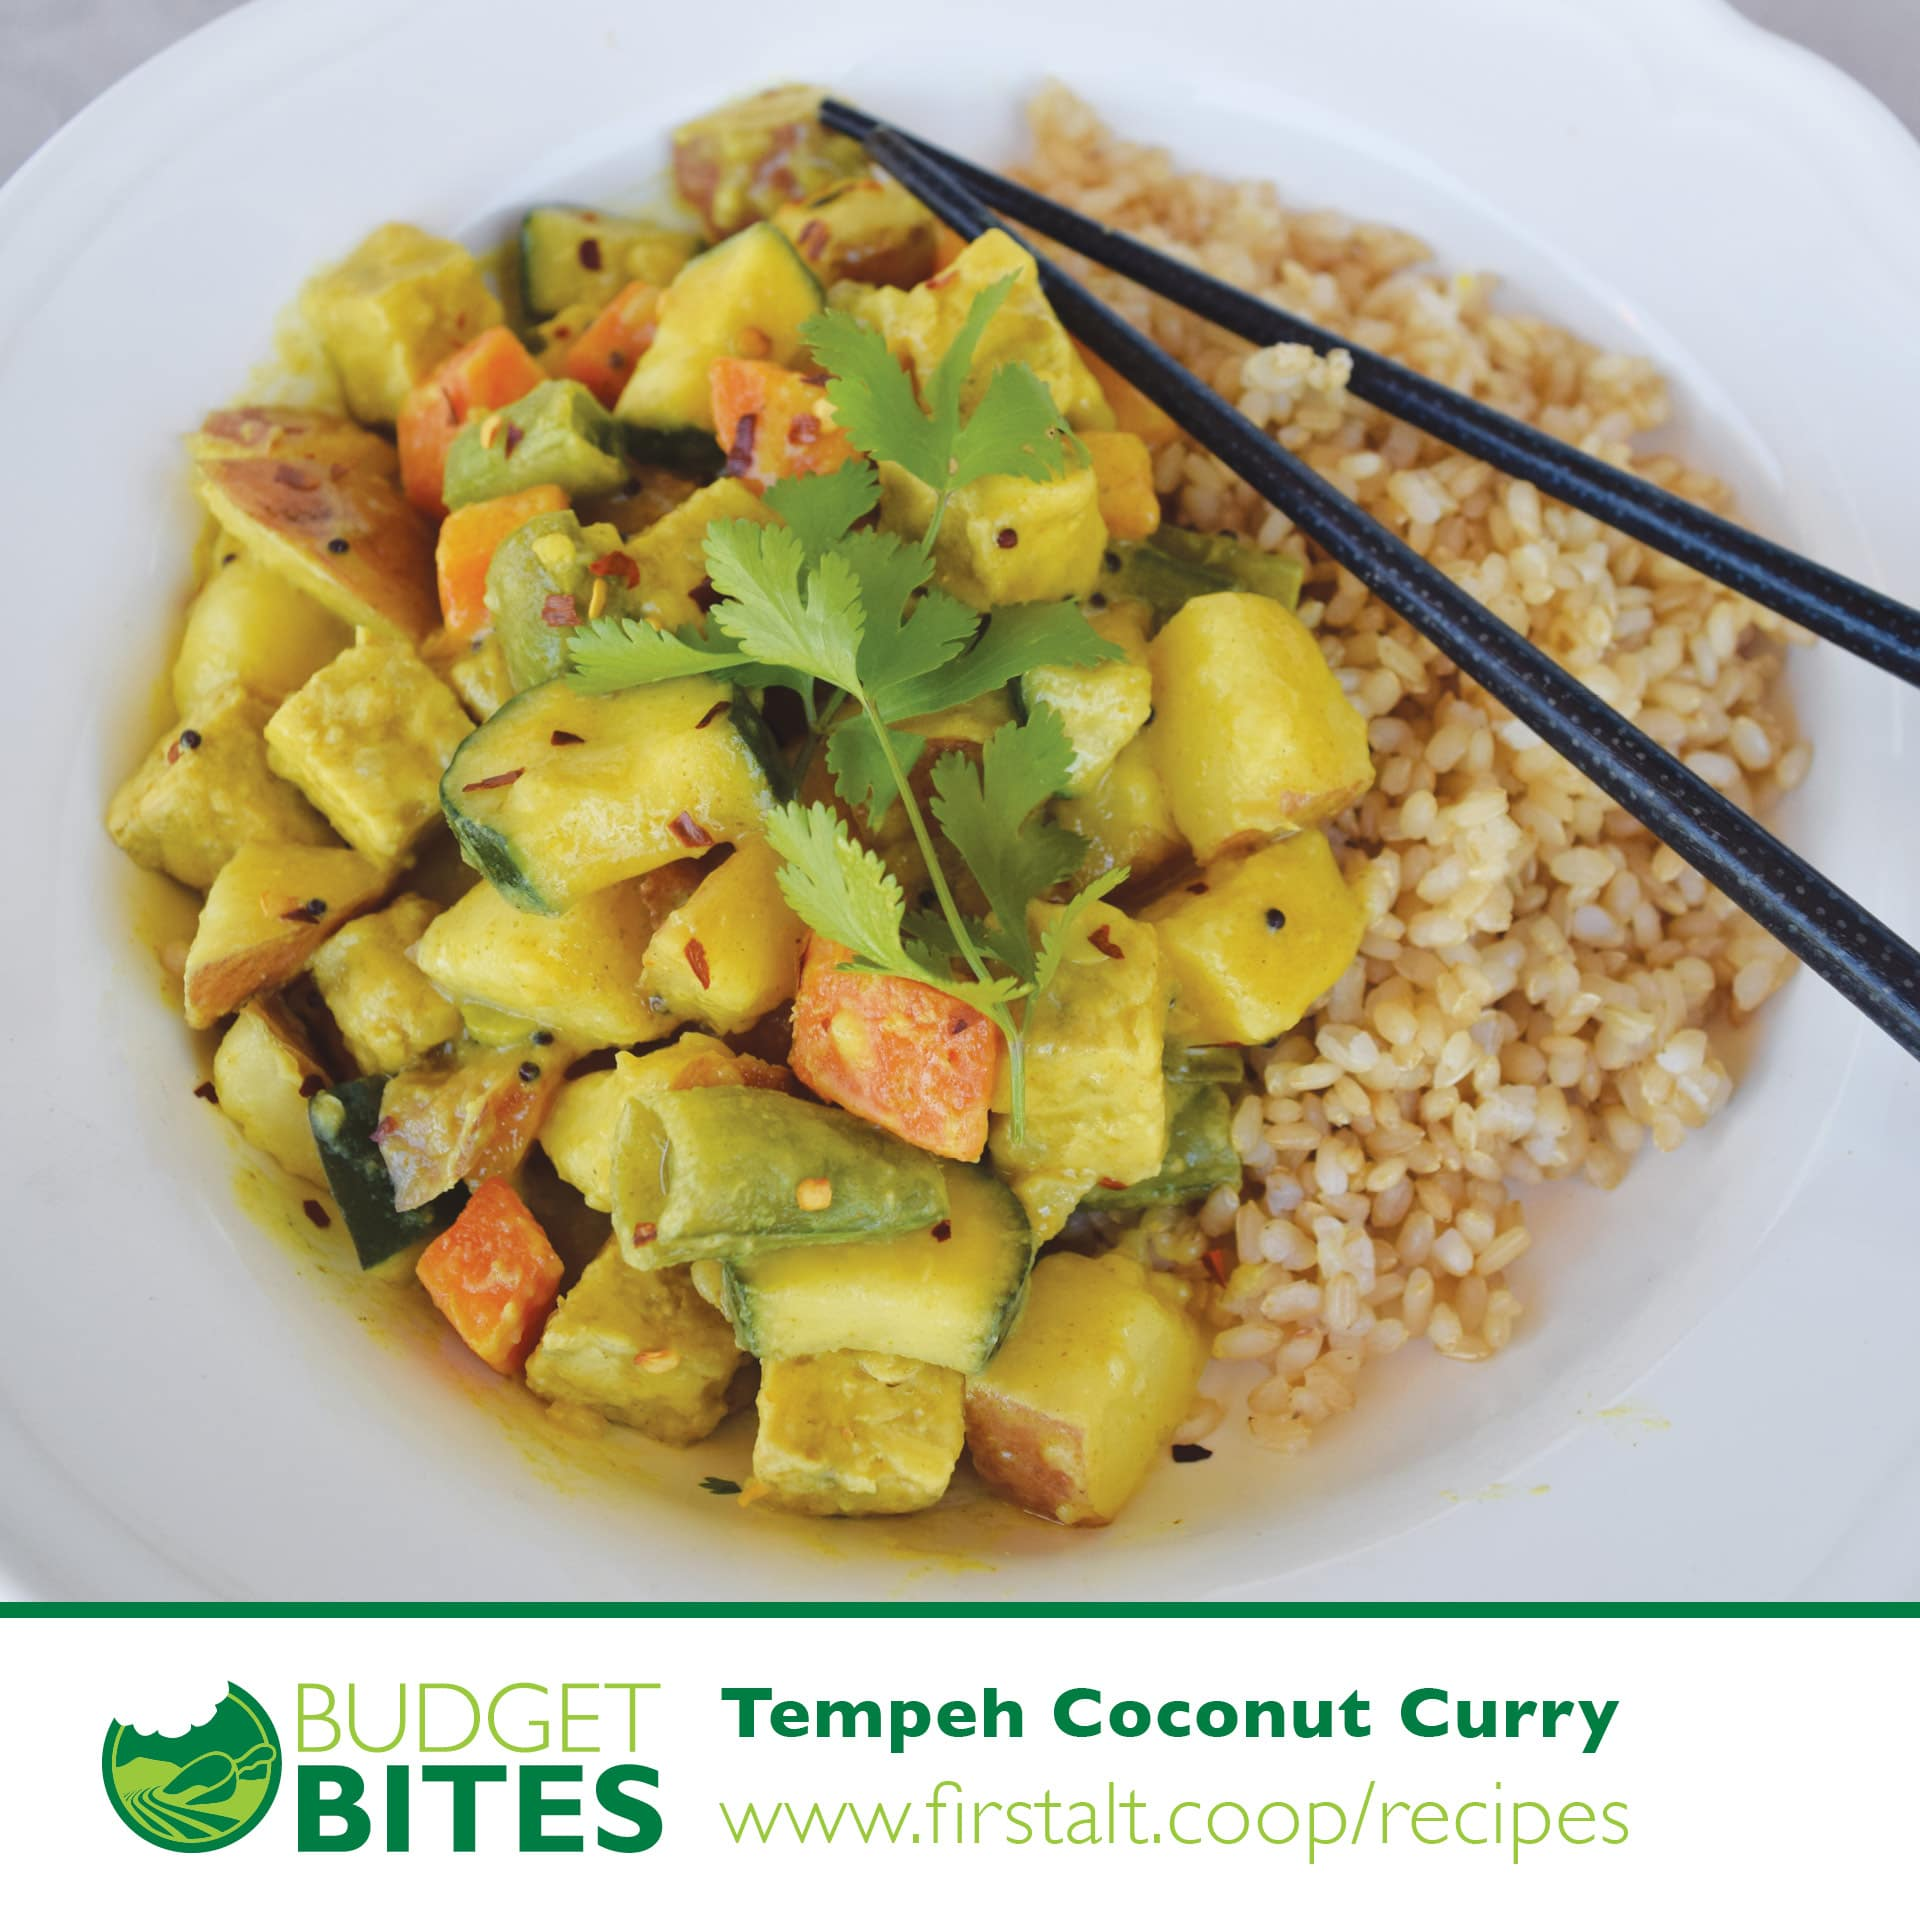 Tempeh Coconut Curry